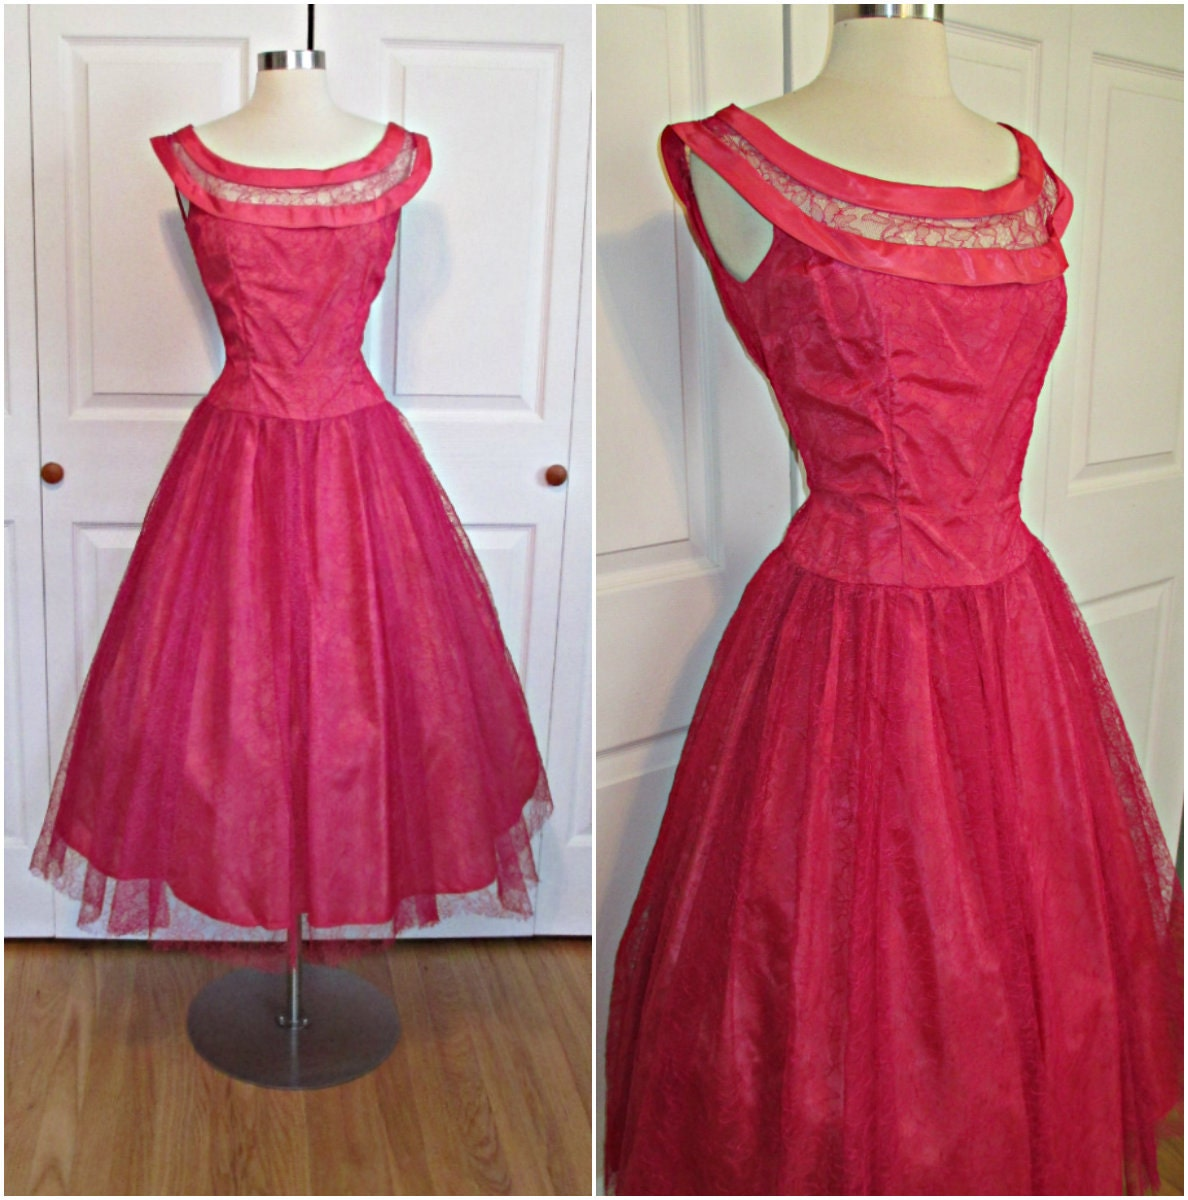 1950 s Vintage Hot Pink Lace Party Prom Dress by